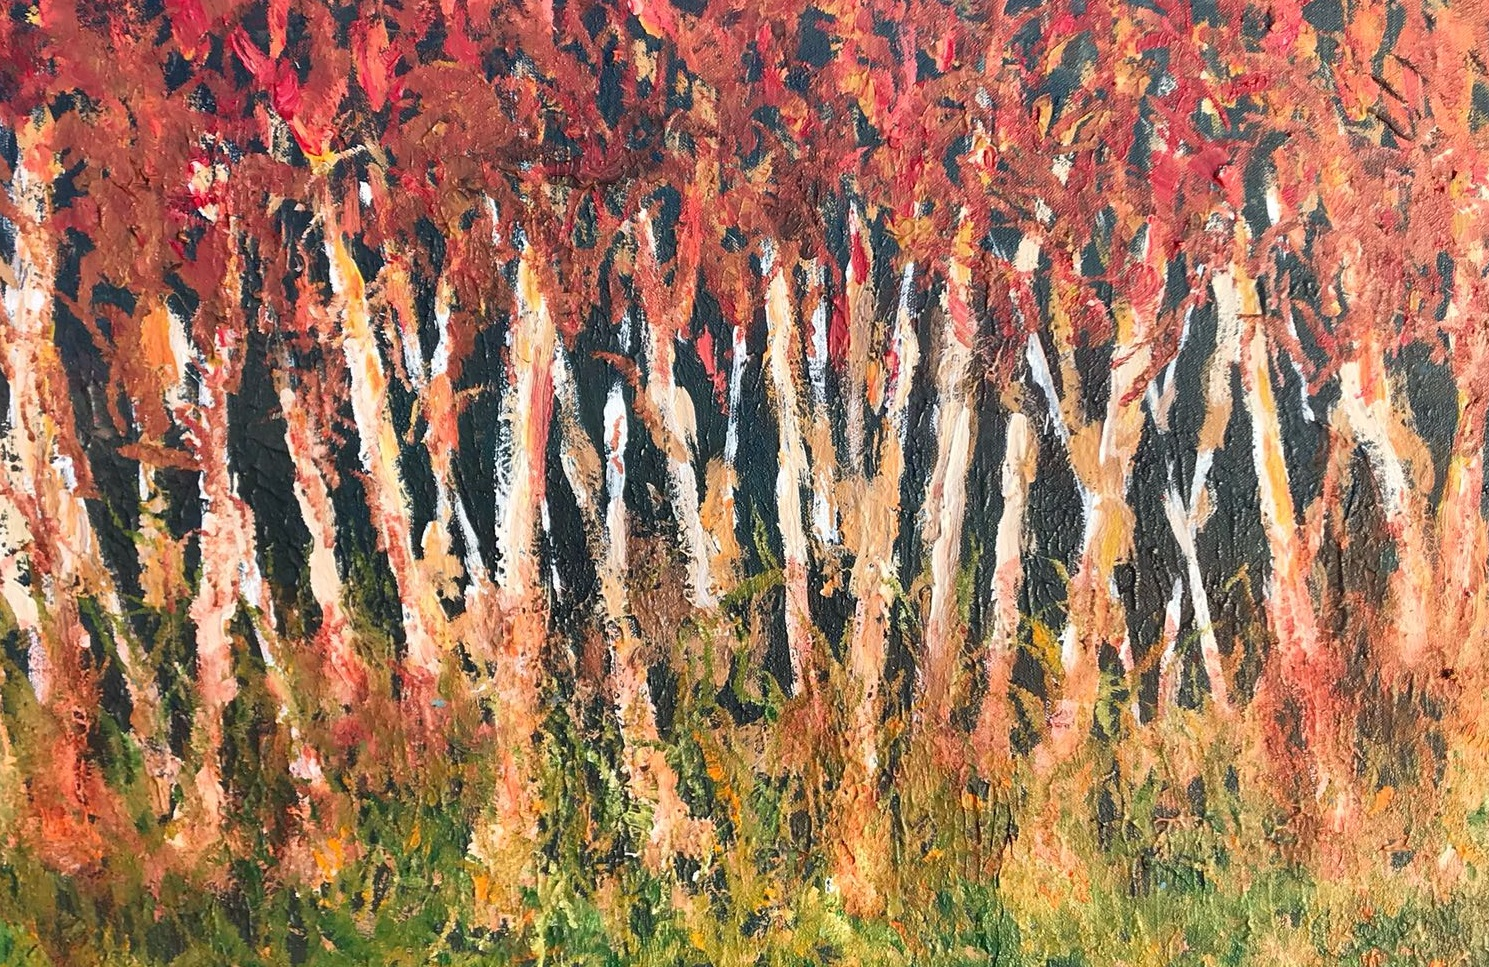 SILVER BIRCHES - Acrylic20 x 30 inches* Gifted to Mary-Jane *